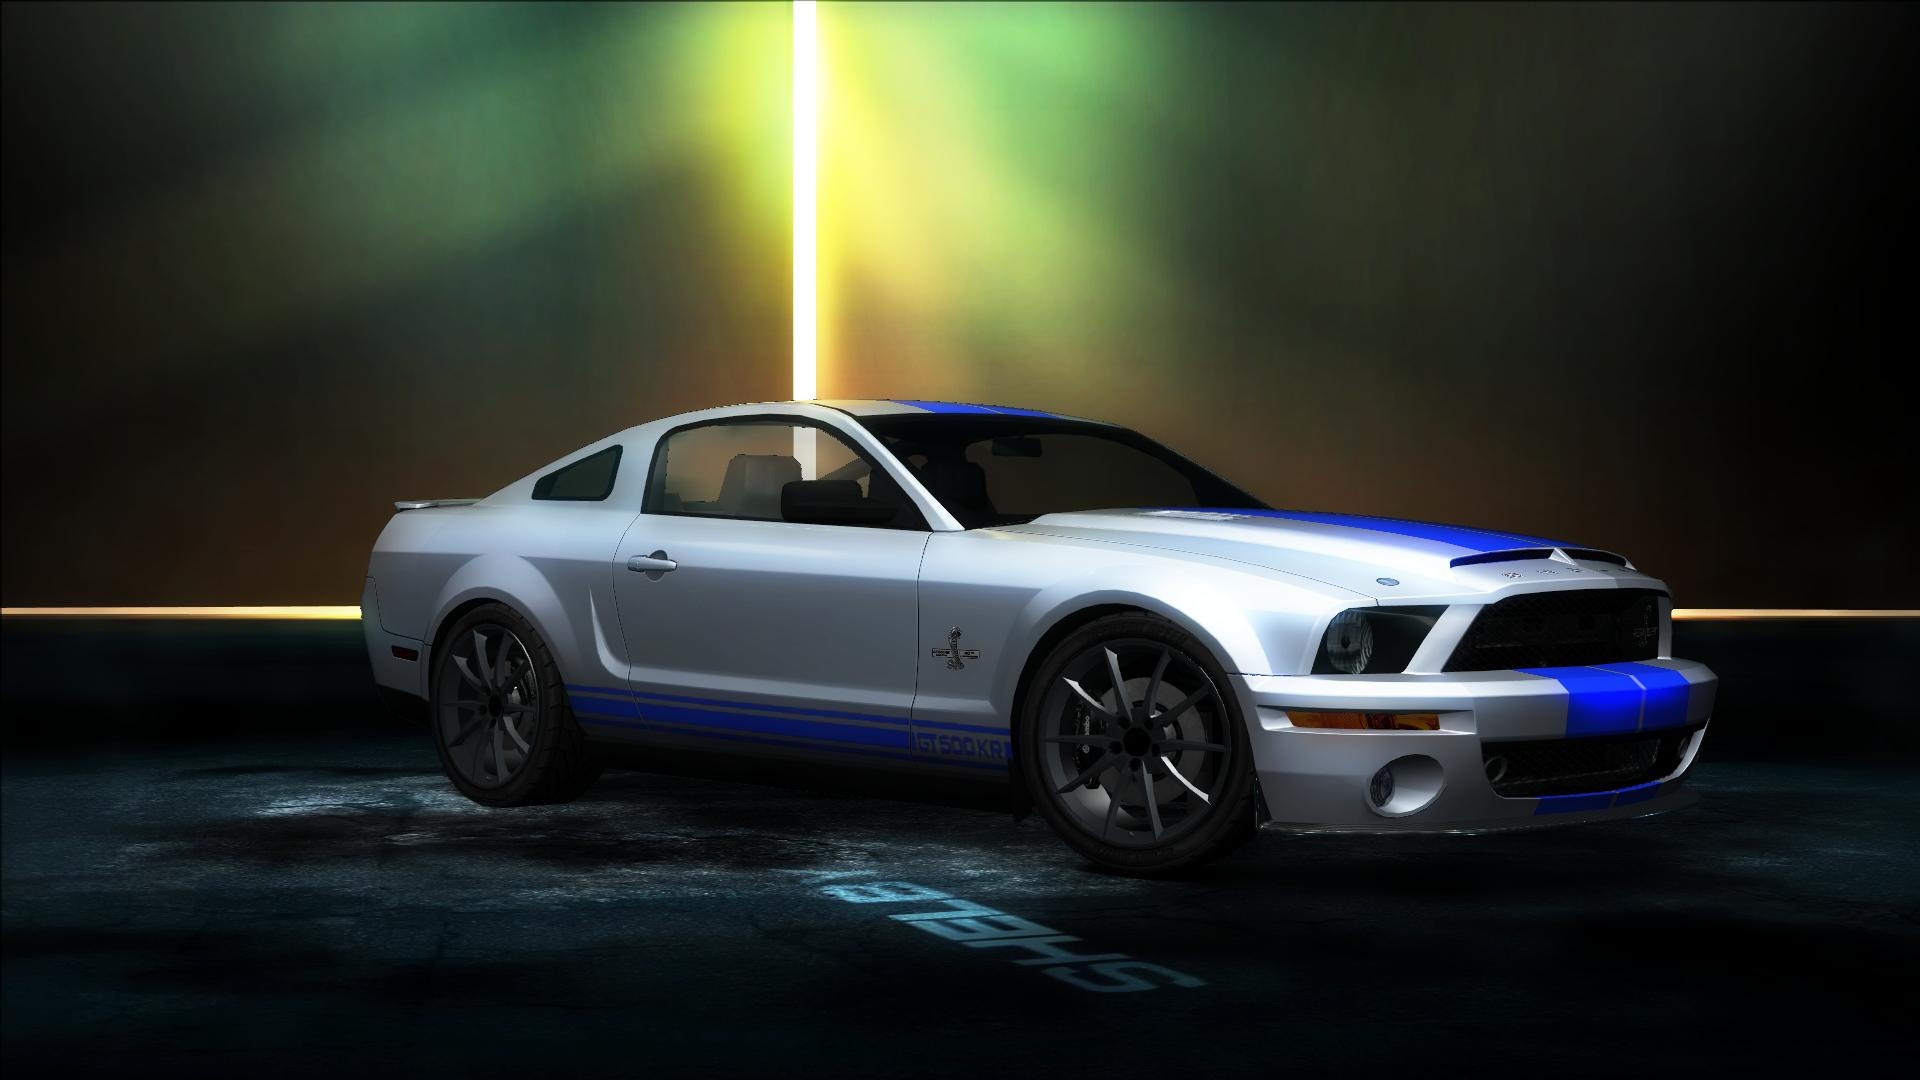 Ford Shelby GT500KR (S-197 I)